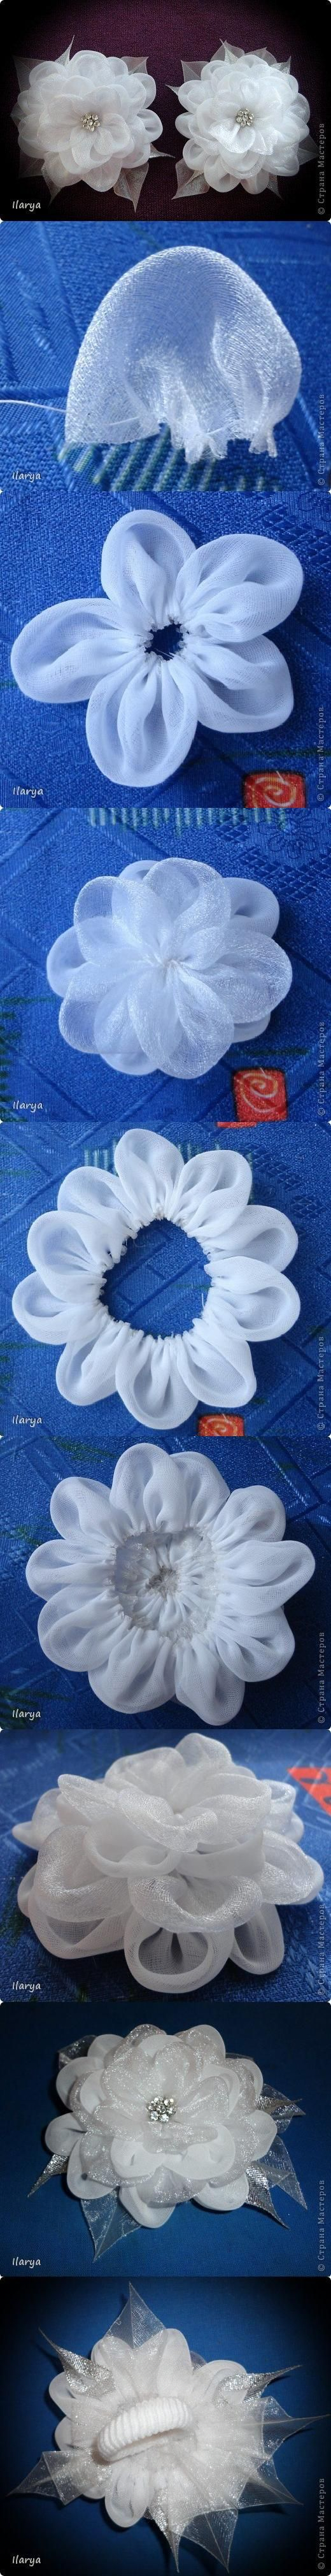 DIY Fabric Lust Flower